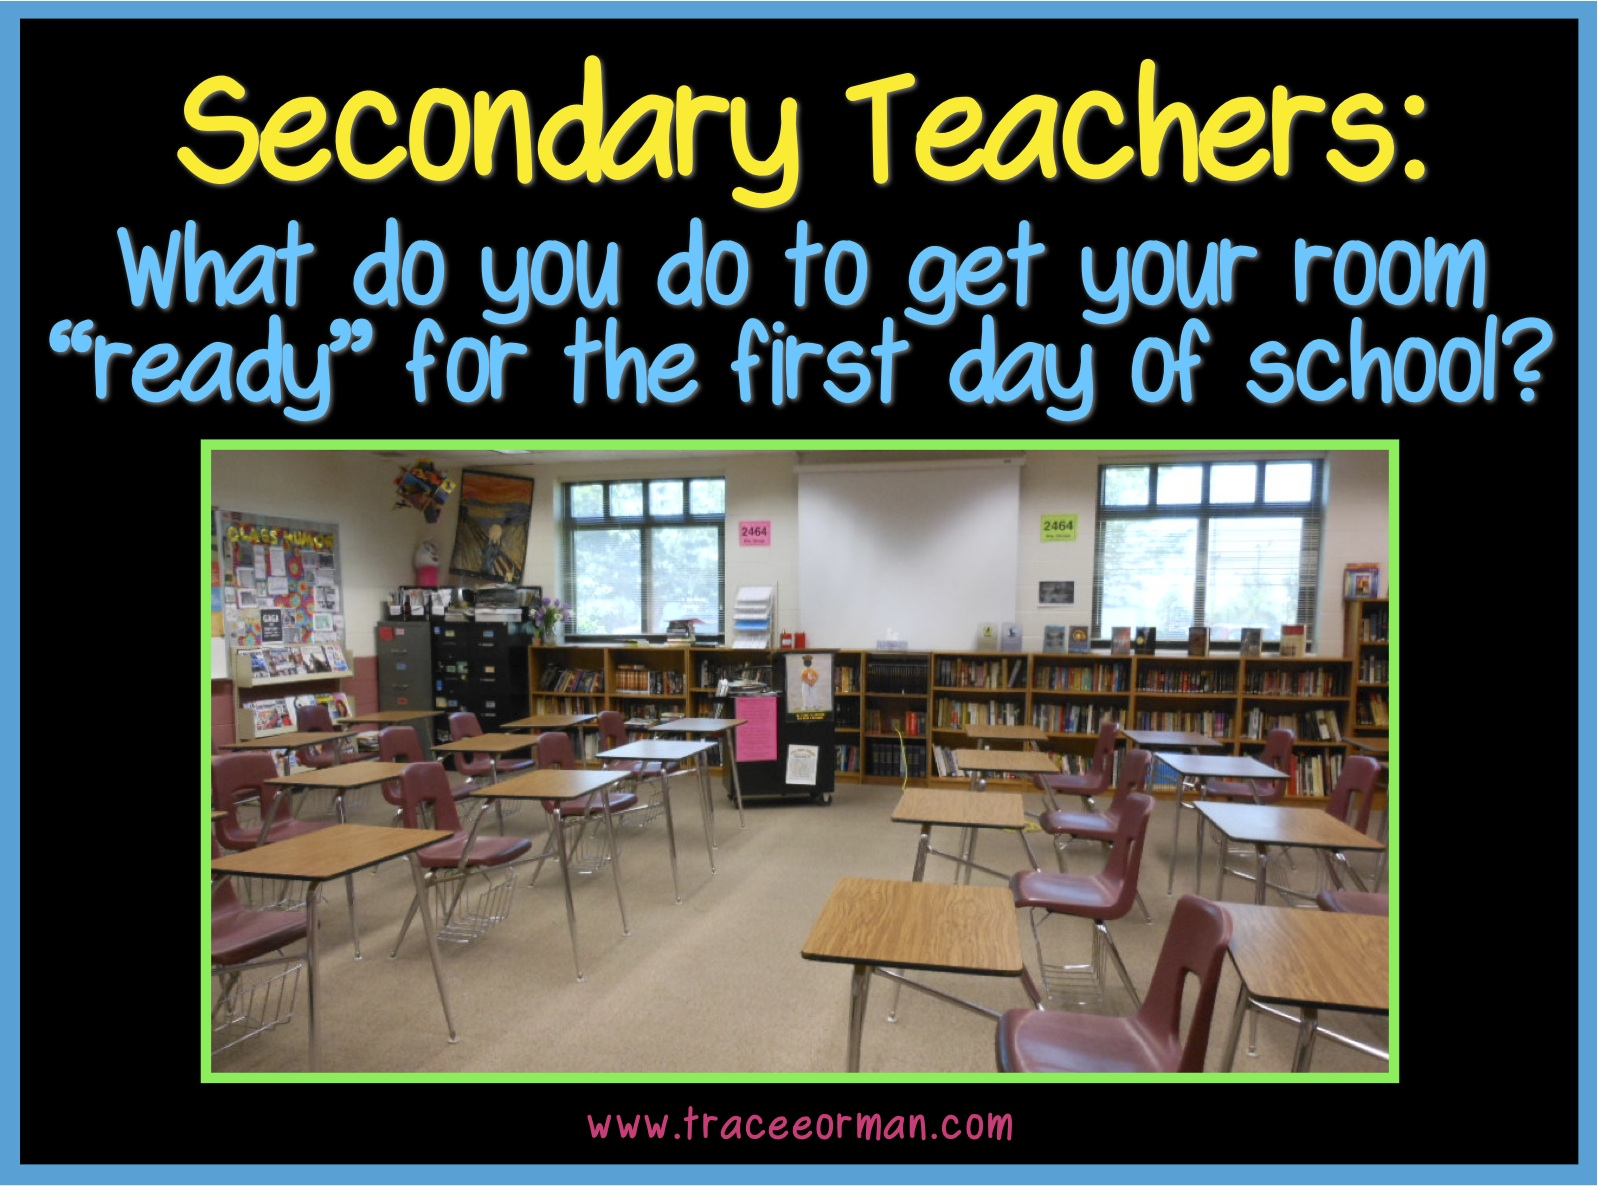 Mrs. Orman's Classroom: To Decorate or Not Decorate...That is the